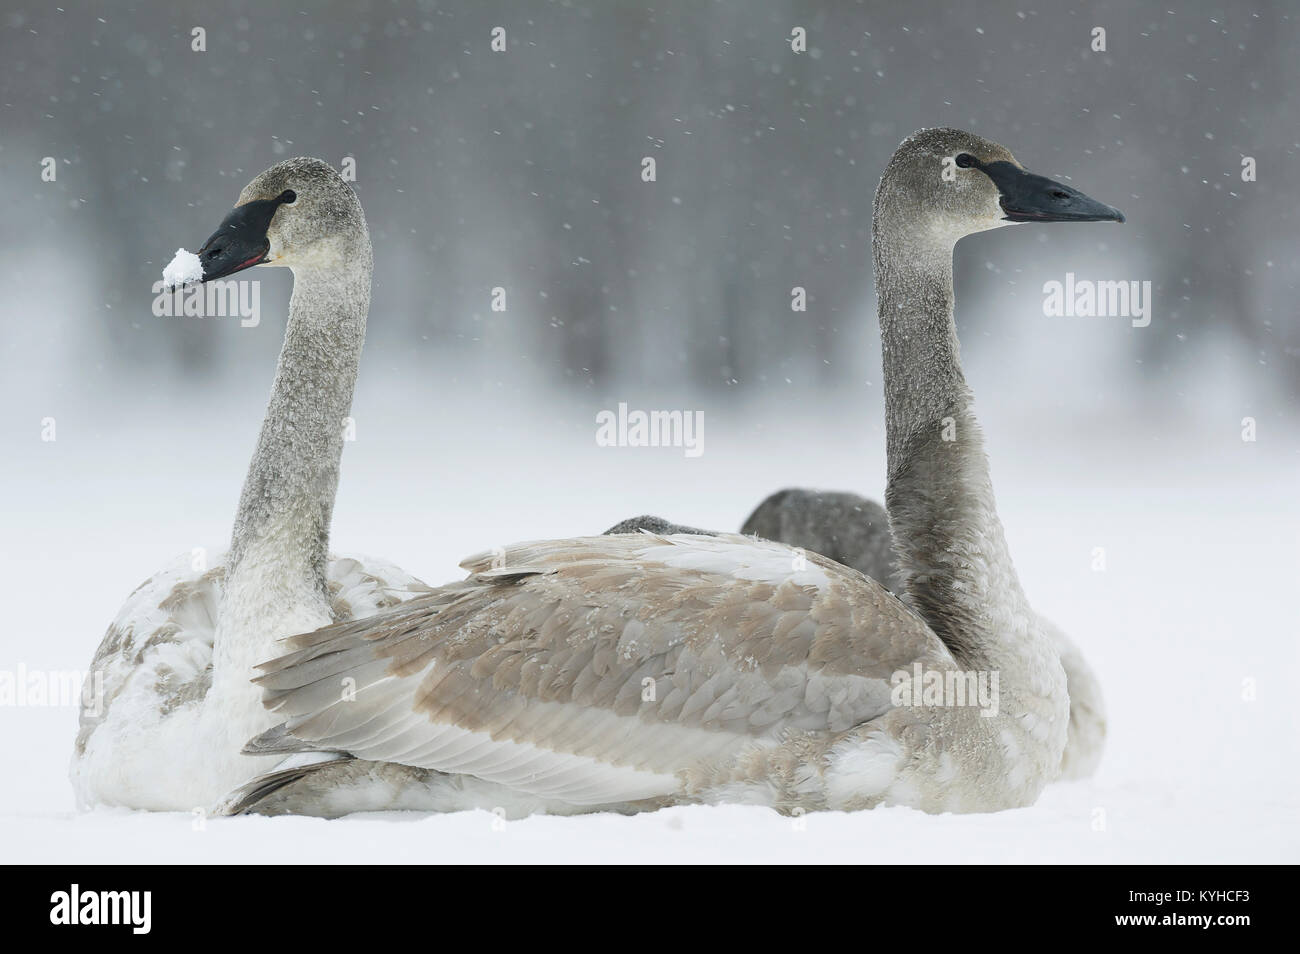 Immature Trumpeter swans (Cygnus buccinator), St. Croix River between Minnesota & Wisconsin, WI, USA, by Dominique - Stock Image